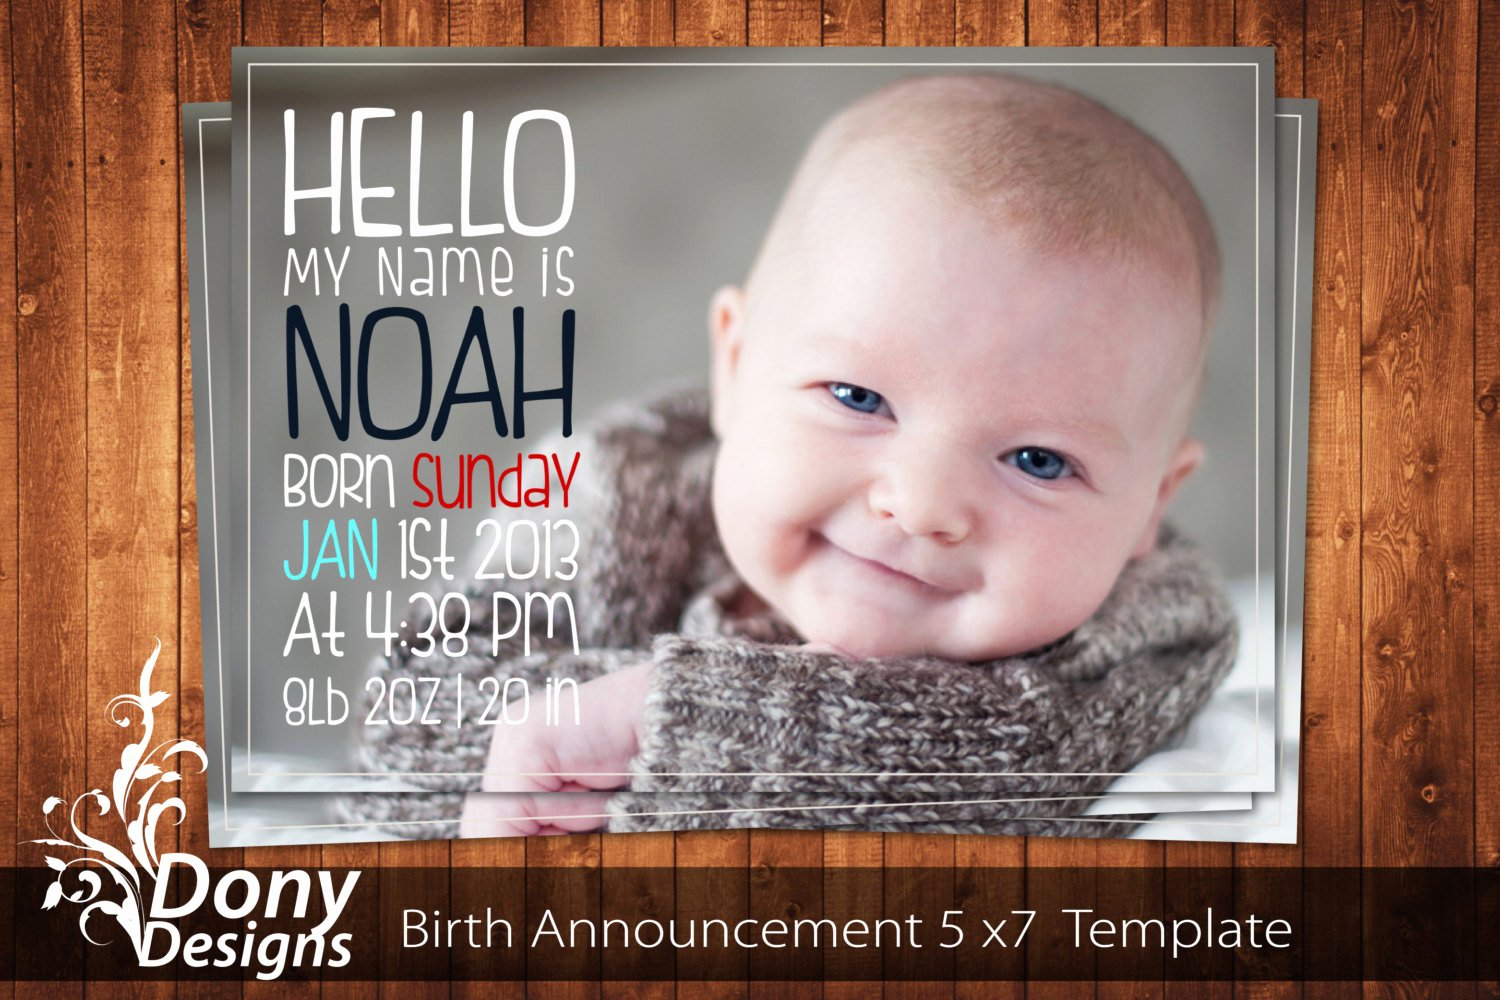 Baby Announcement Template Free Lovely Buy 1 Get 1 Free Birth Announcement Neutral Baby